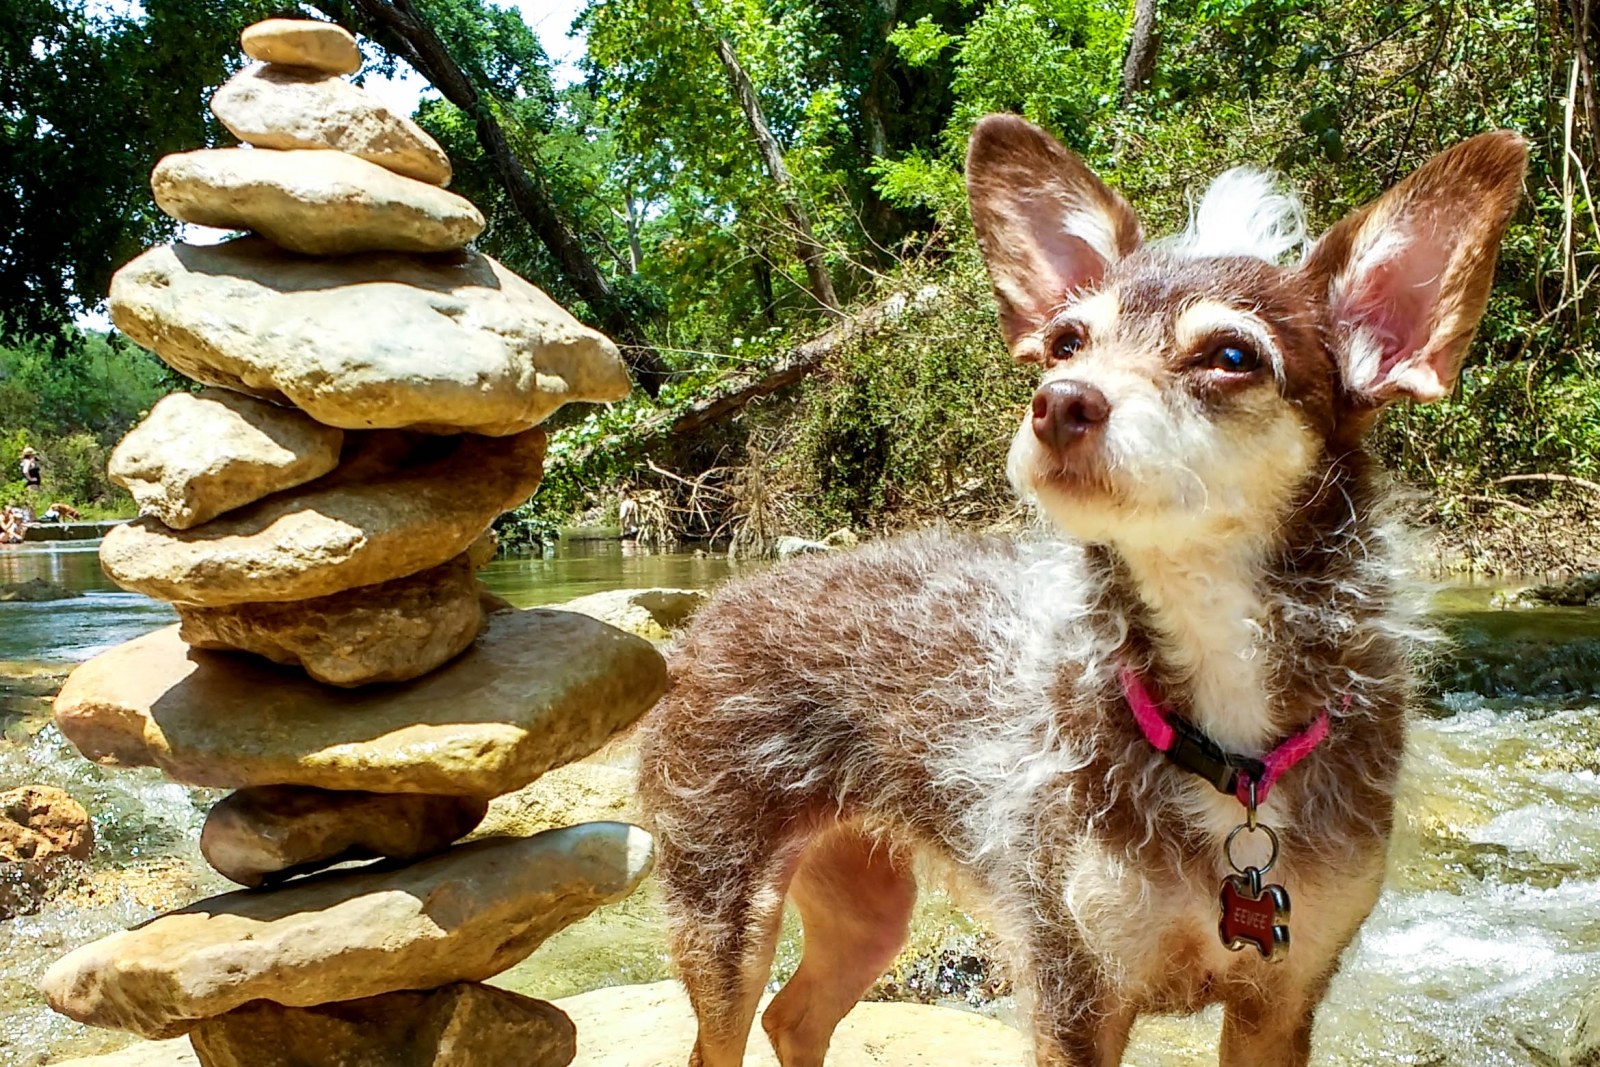 A small dog standing next to a pile of stacked rocks.